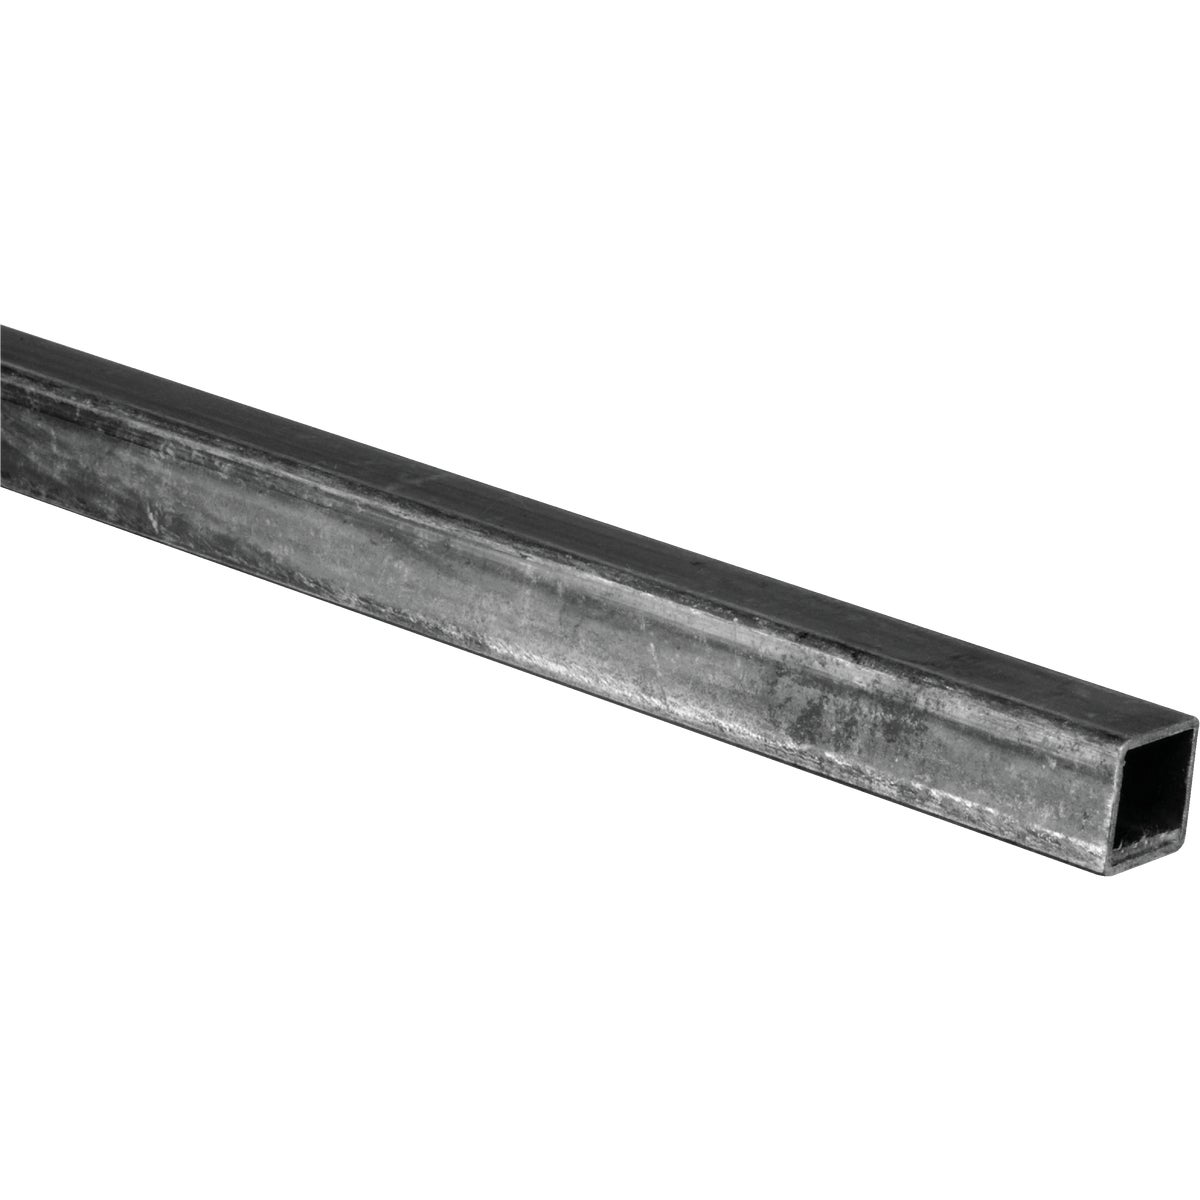 3/4X3' SQUARE TUBE - N341453 by National Mfg Co